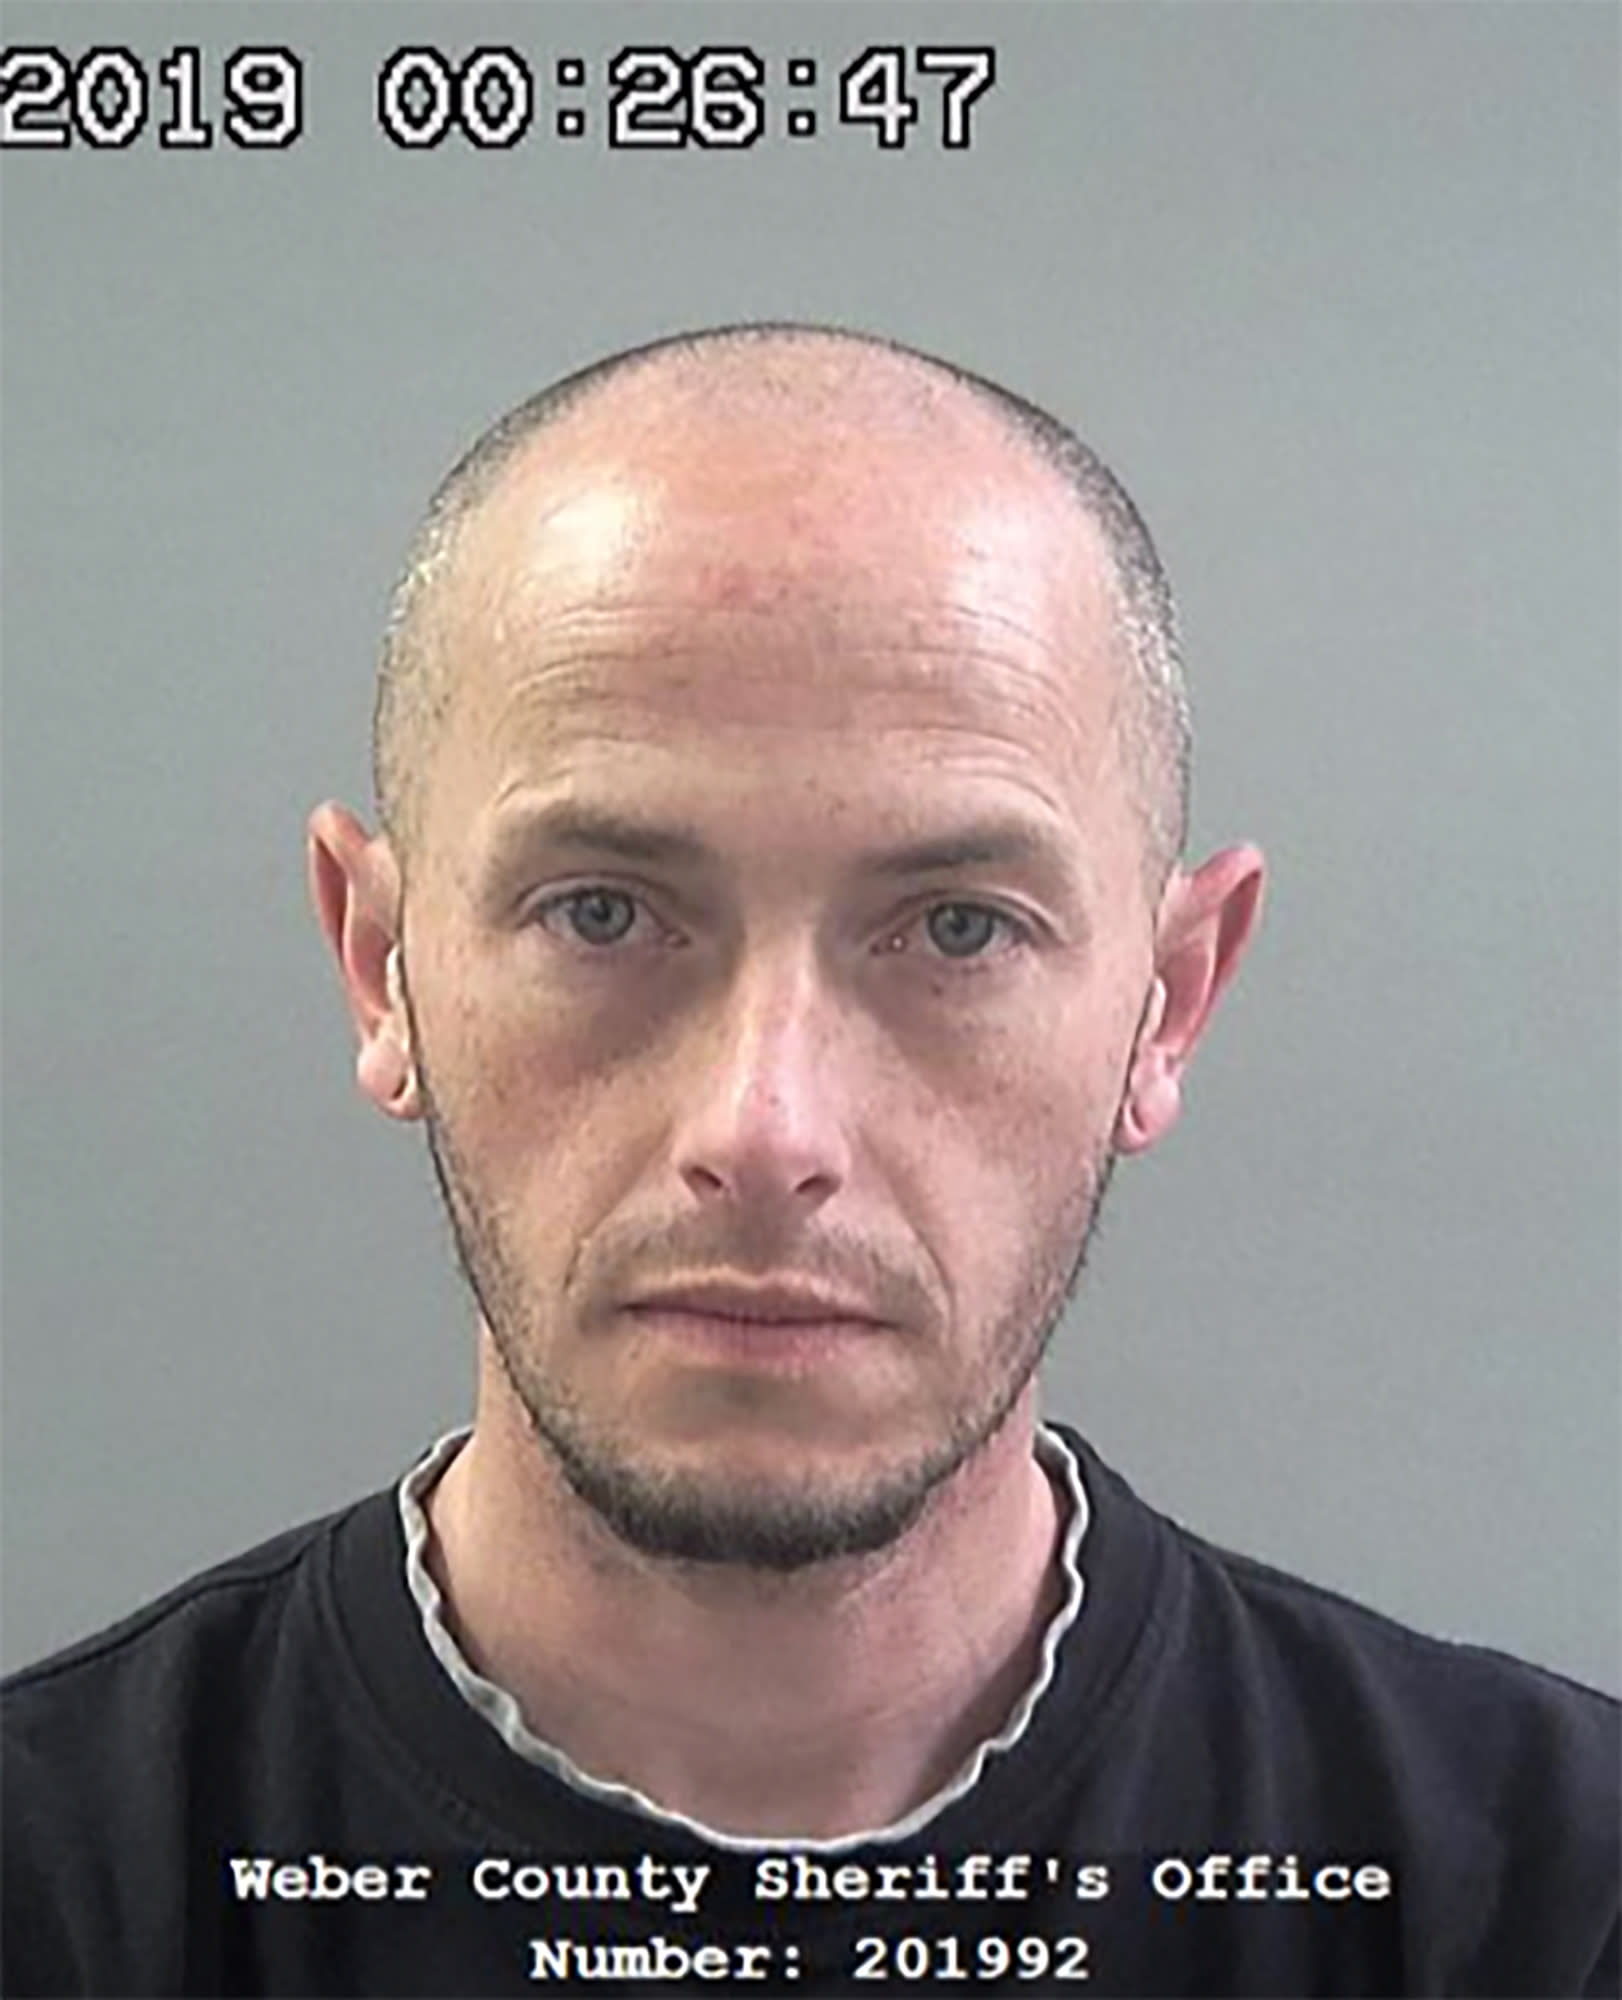 This 2019 photo provided by the Weber County Sheriff's Office shows inmate Matthew Belnap. A California man who was behind bars for bank fraud escaped from a Utah jail Tuesday night by posing as Belnap, a fellow inmate whose time had come to be released, authorities said Wednesday Feb. 26, 2020. Inmate, Kaleb Wiewandt was allowed to leave the jail in Ogden, Utah, because staff thought he was Belnap, who helped him carry out the plan, said Weber County Sheriff's Lt. Joshua Marigoni. Belnap who supposed to be freed Tuesday night after spending more than 70 days in jail after pleading no contest last year to retail theft charges, he said. ( Weber County Sheriff's Office via AP)